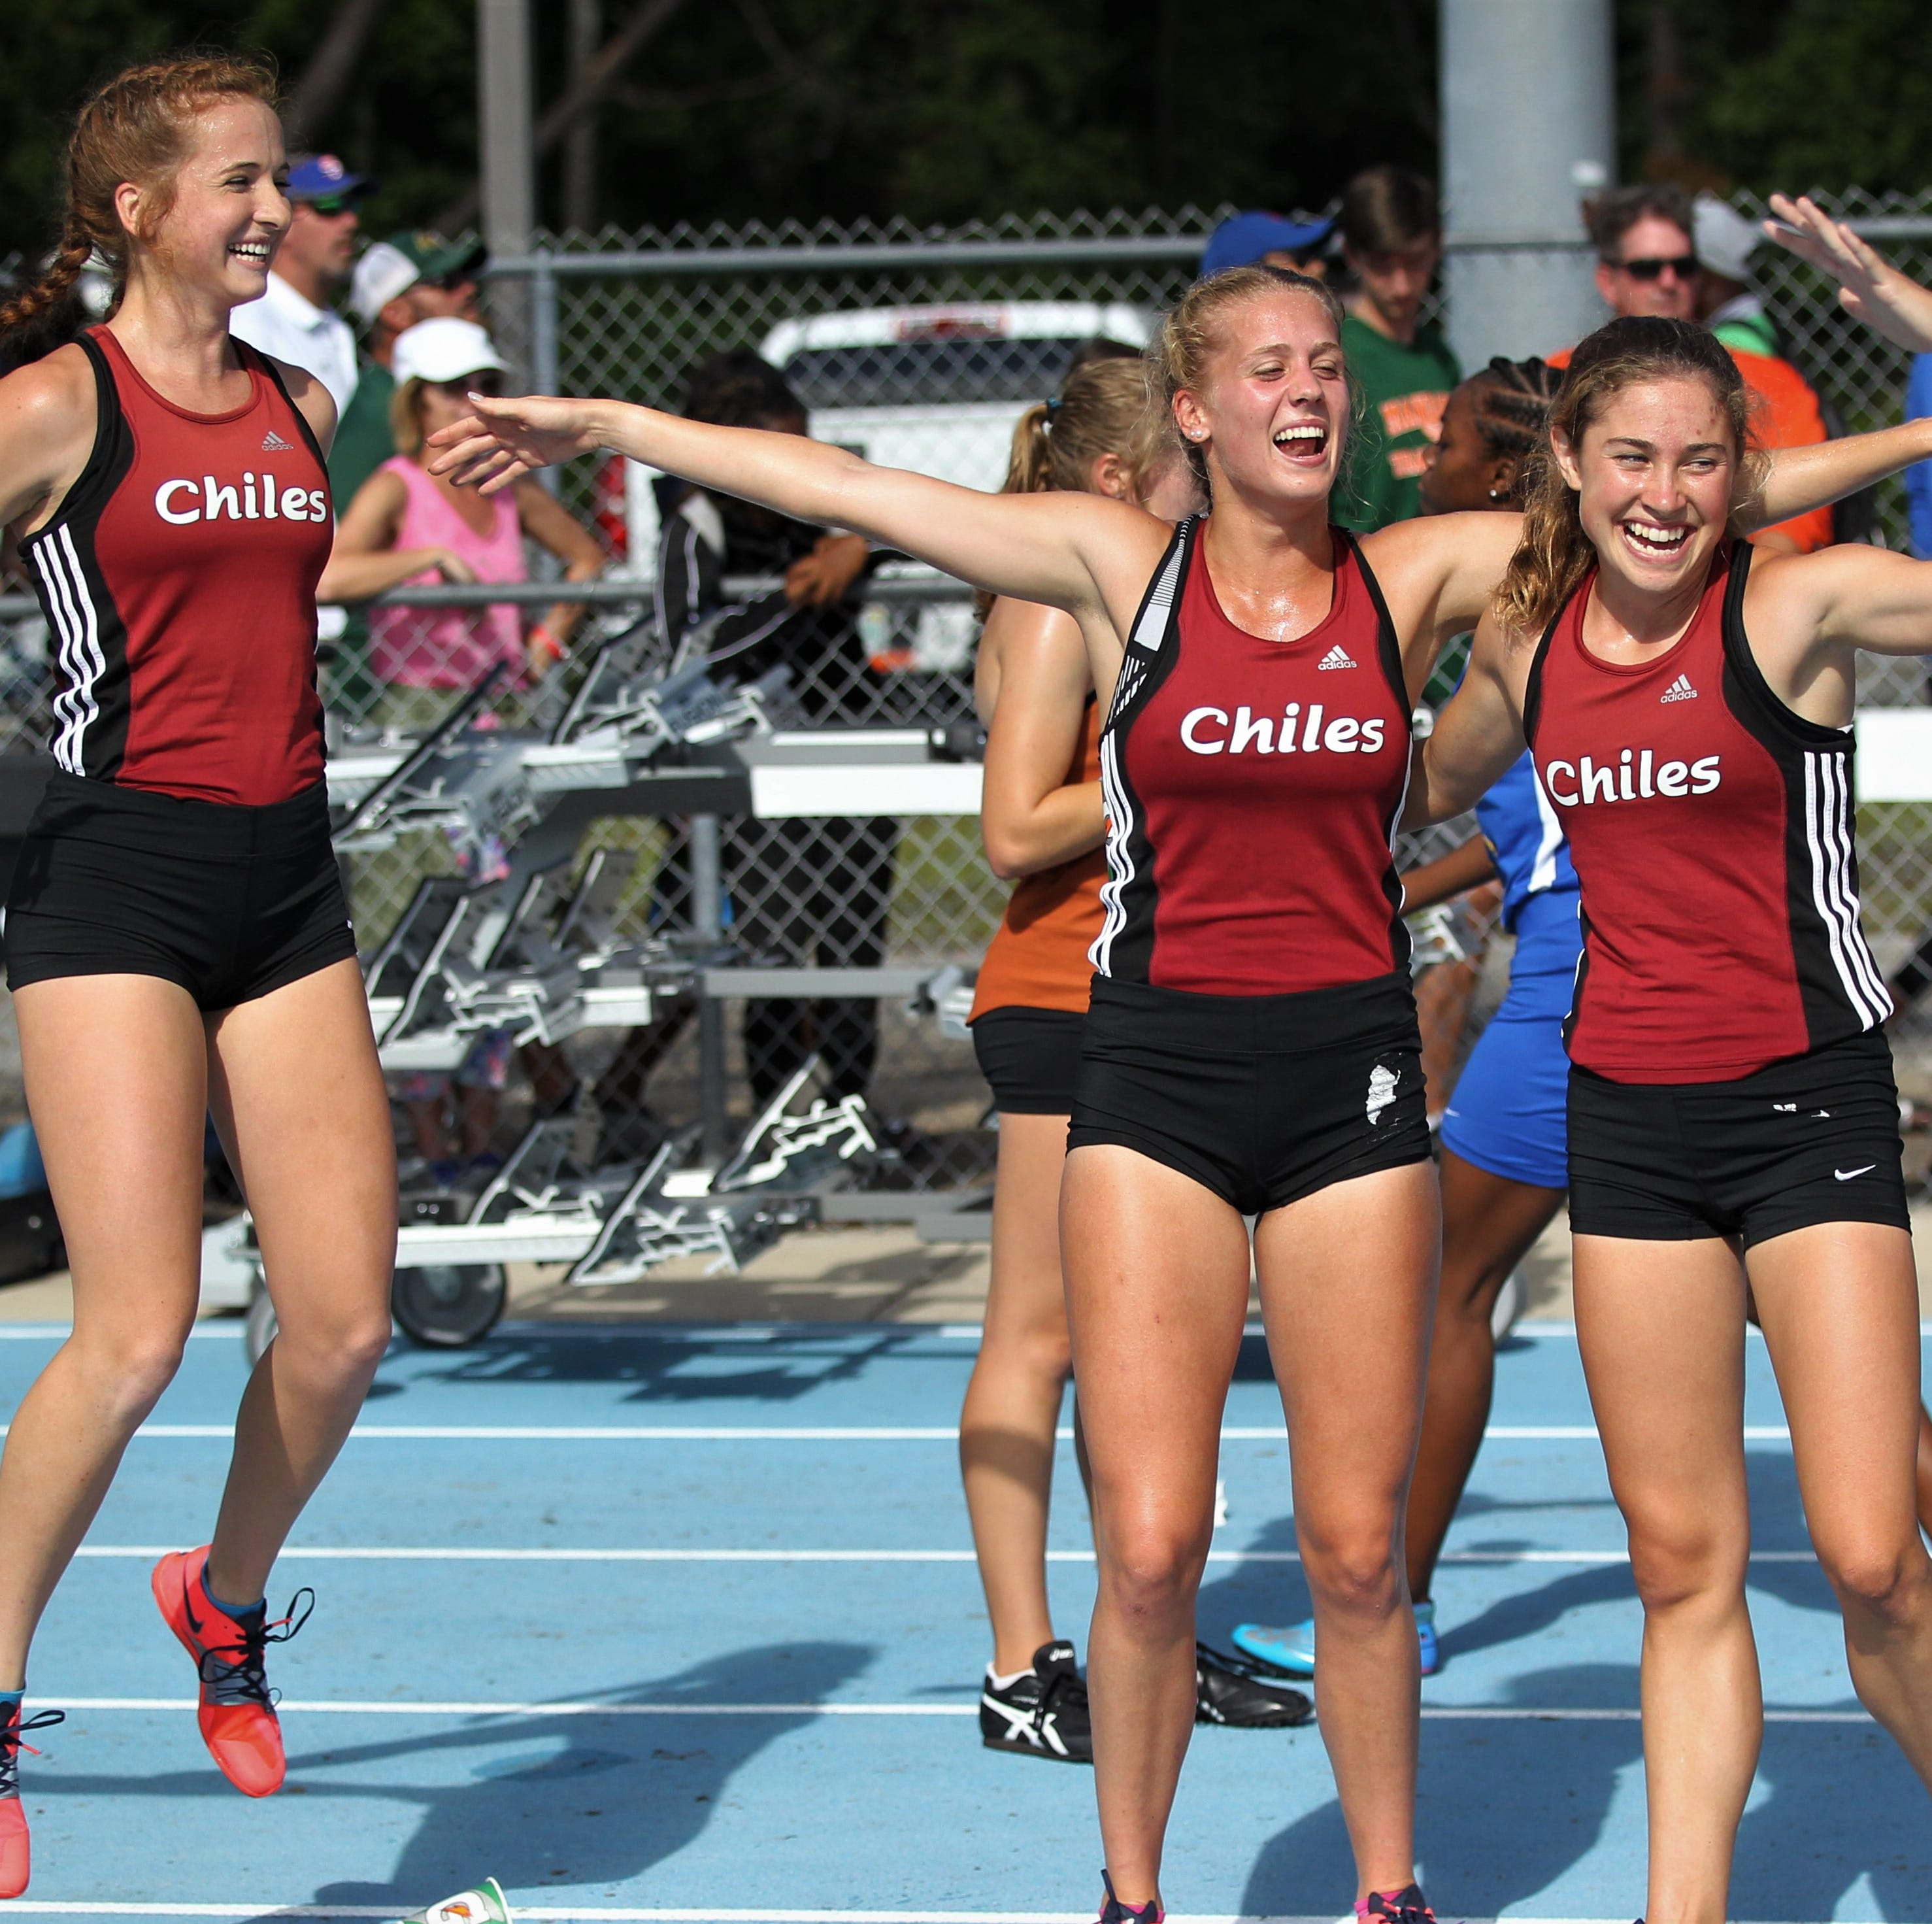 Distance dominant! Chiles' girls track team earns Class 3A state runner-up with four girls